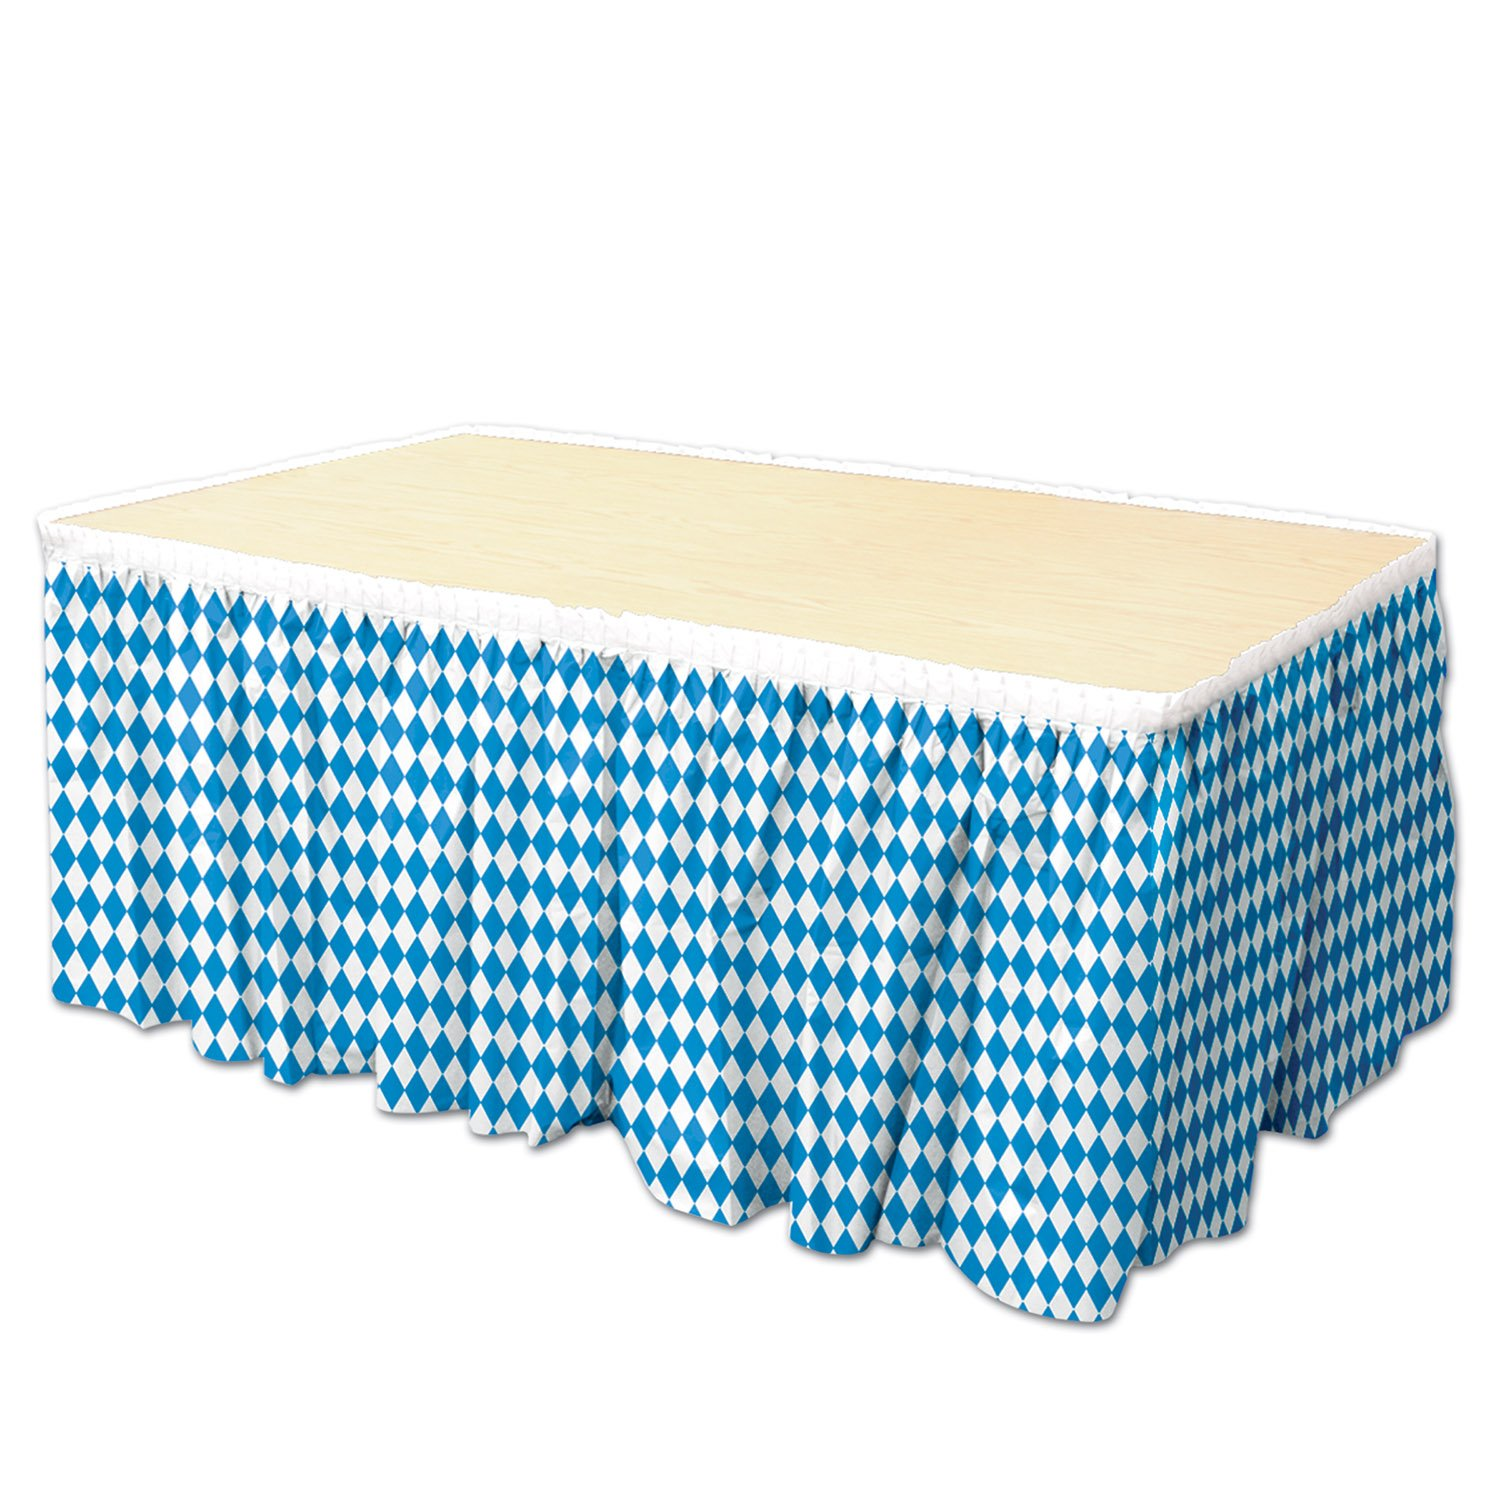 Oktoberfest Table Skirting, 29'' x 14', Blue/White 1/Pkg Pkg/12 by PMU